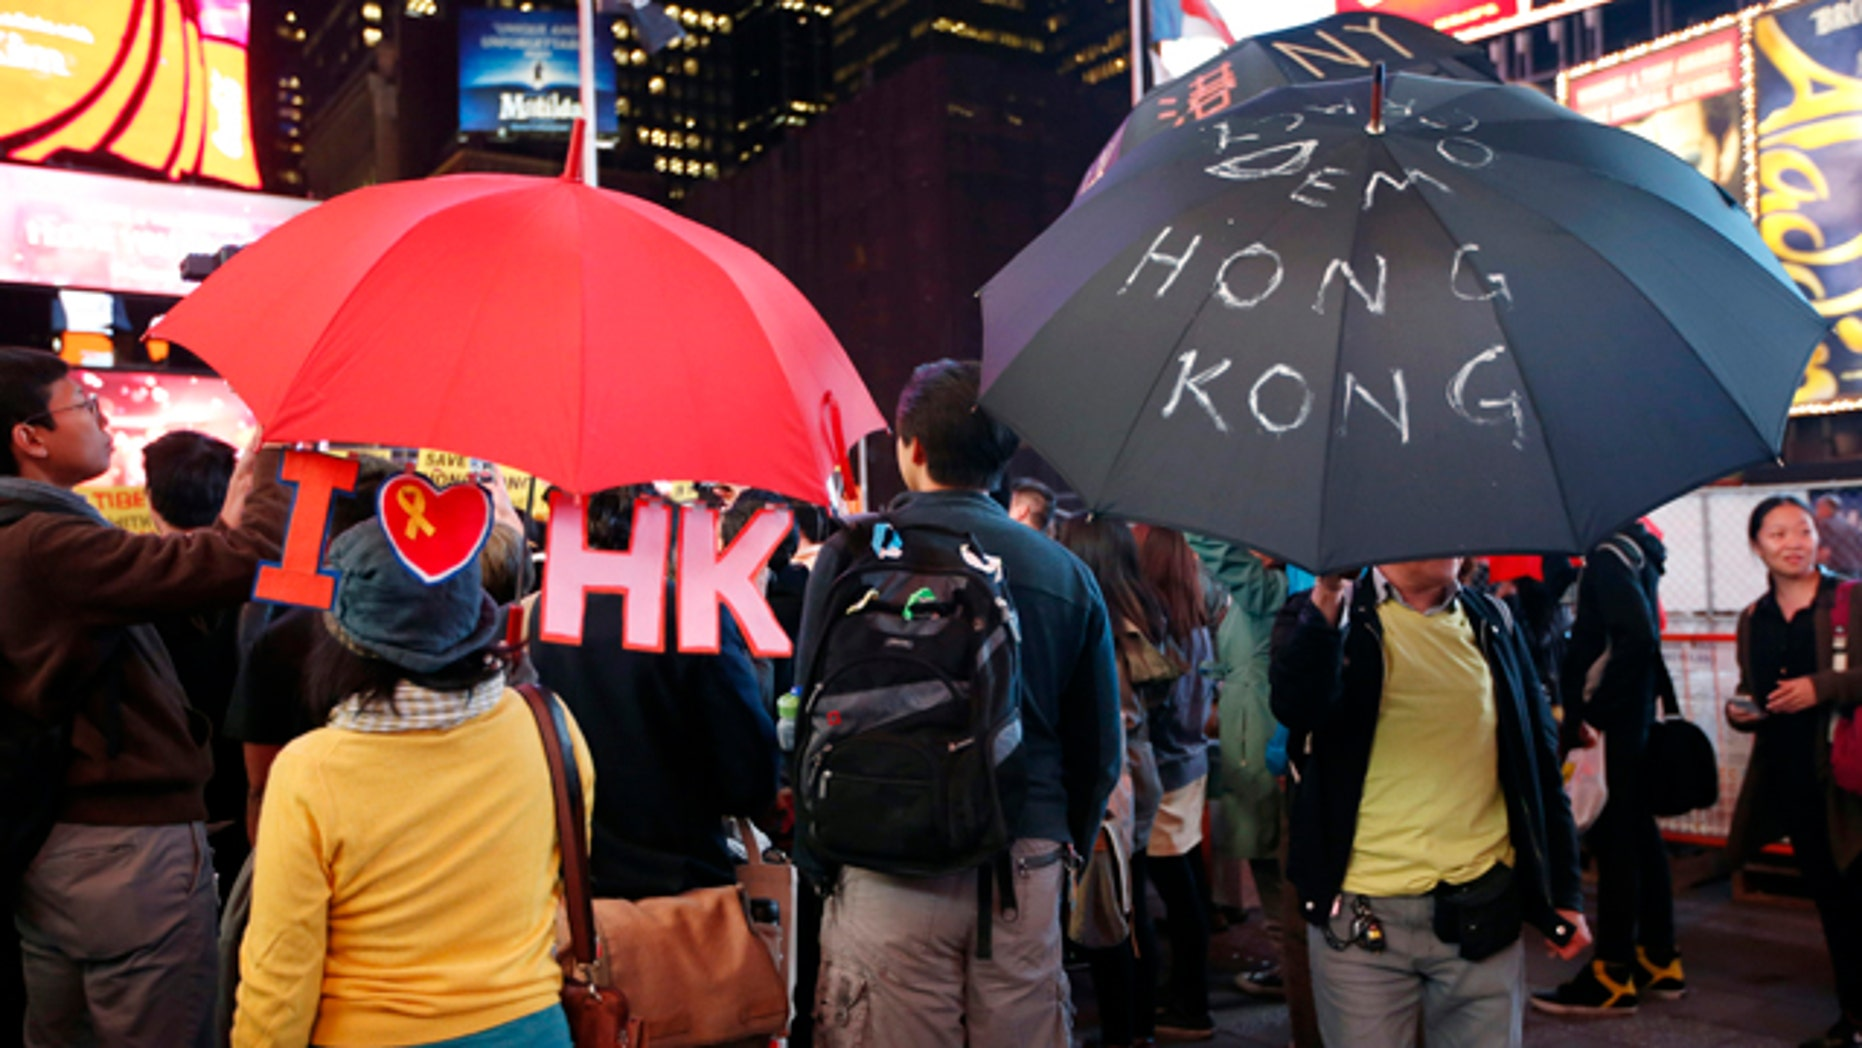 October 1, 2014: People hold up customized umbrellas during a rally in New York's Times Square. Students bearing umbrellas as a sign of solidarity gathered at rallies in several U.S. cities to show support for pro-democracy protesters in Hong Kong. (AP Photo/Kathy Willens)